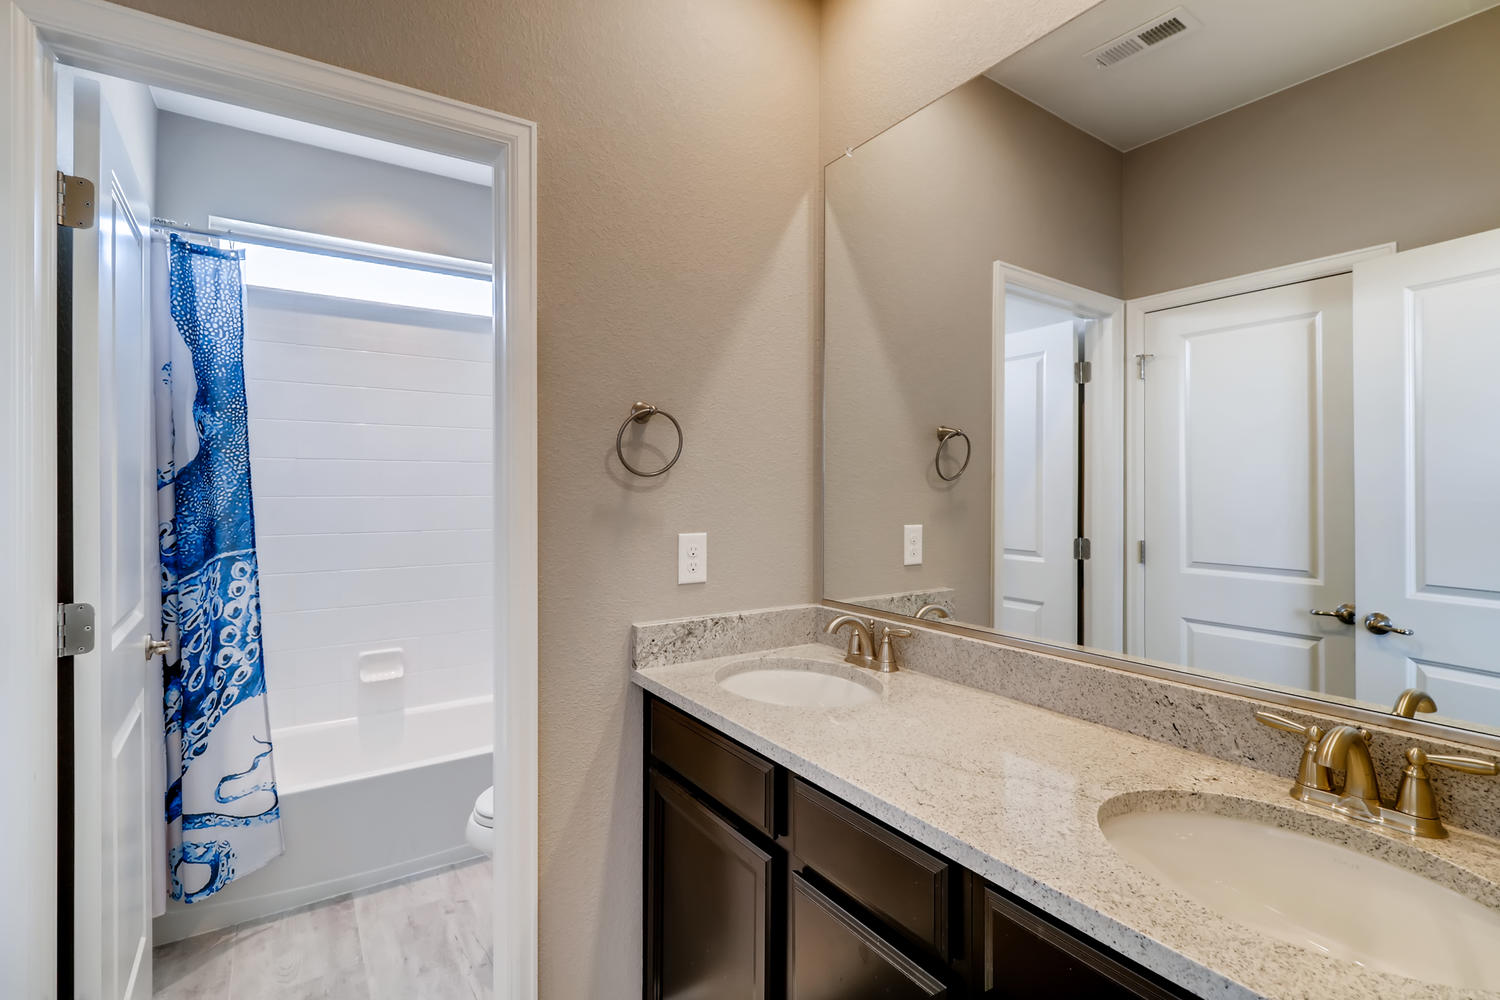 REAL ESTATE LISTING: 1029 Redbud Circle Bathroom #2